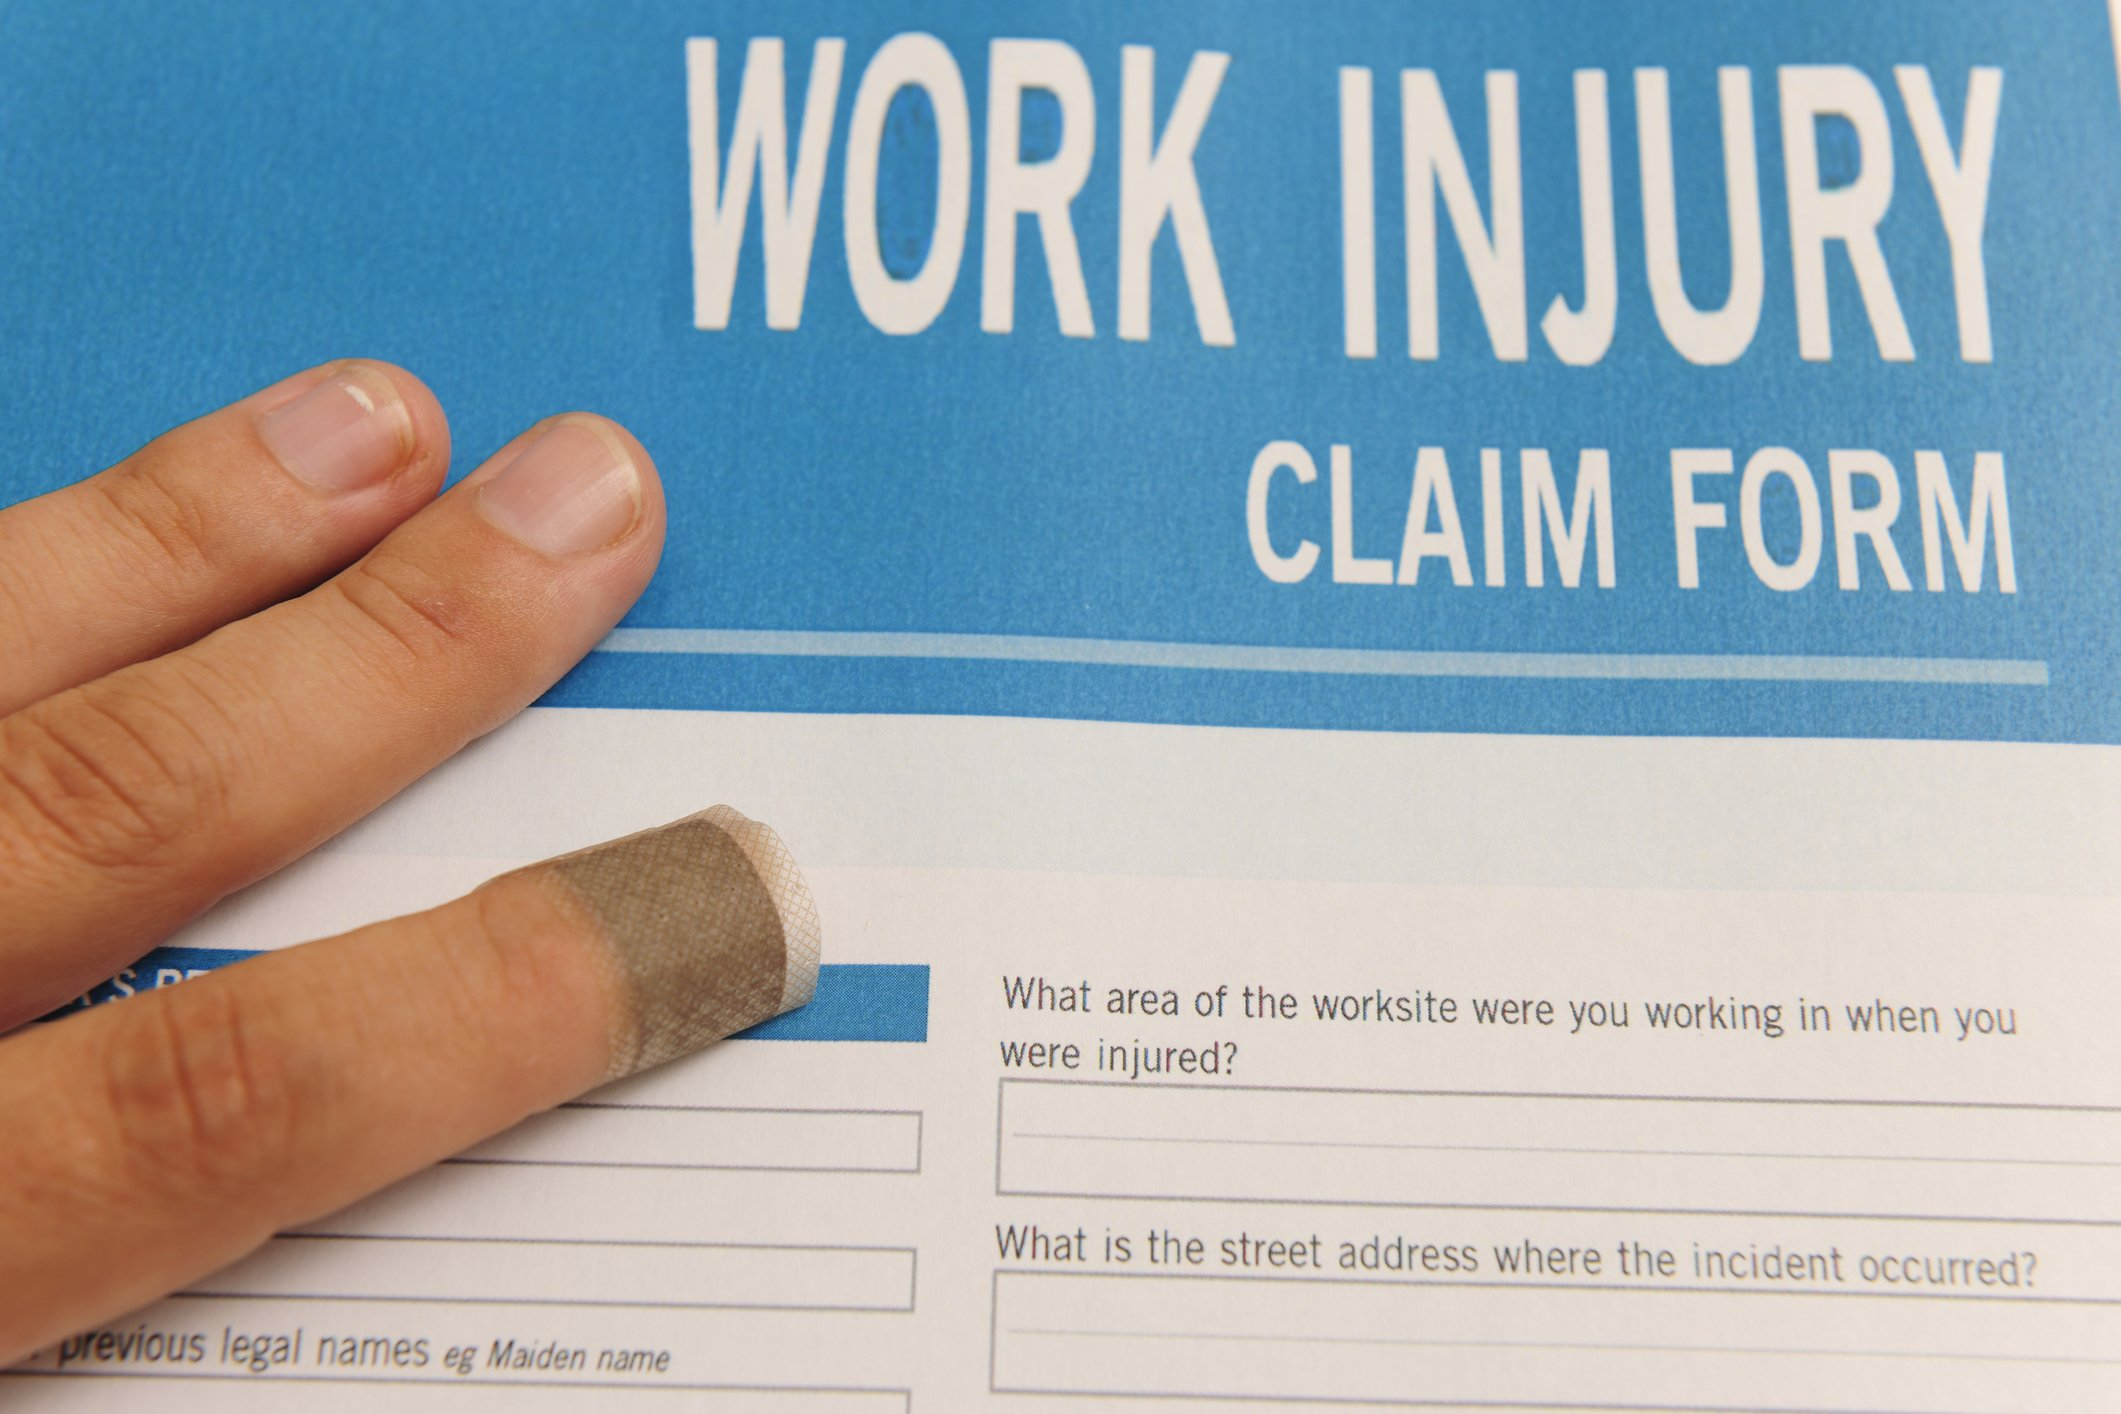 workers compensation and barcode scanning